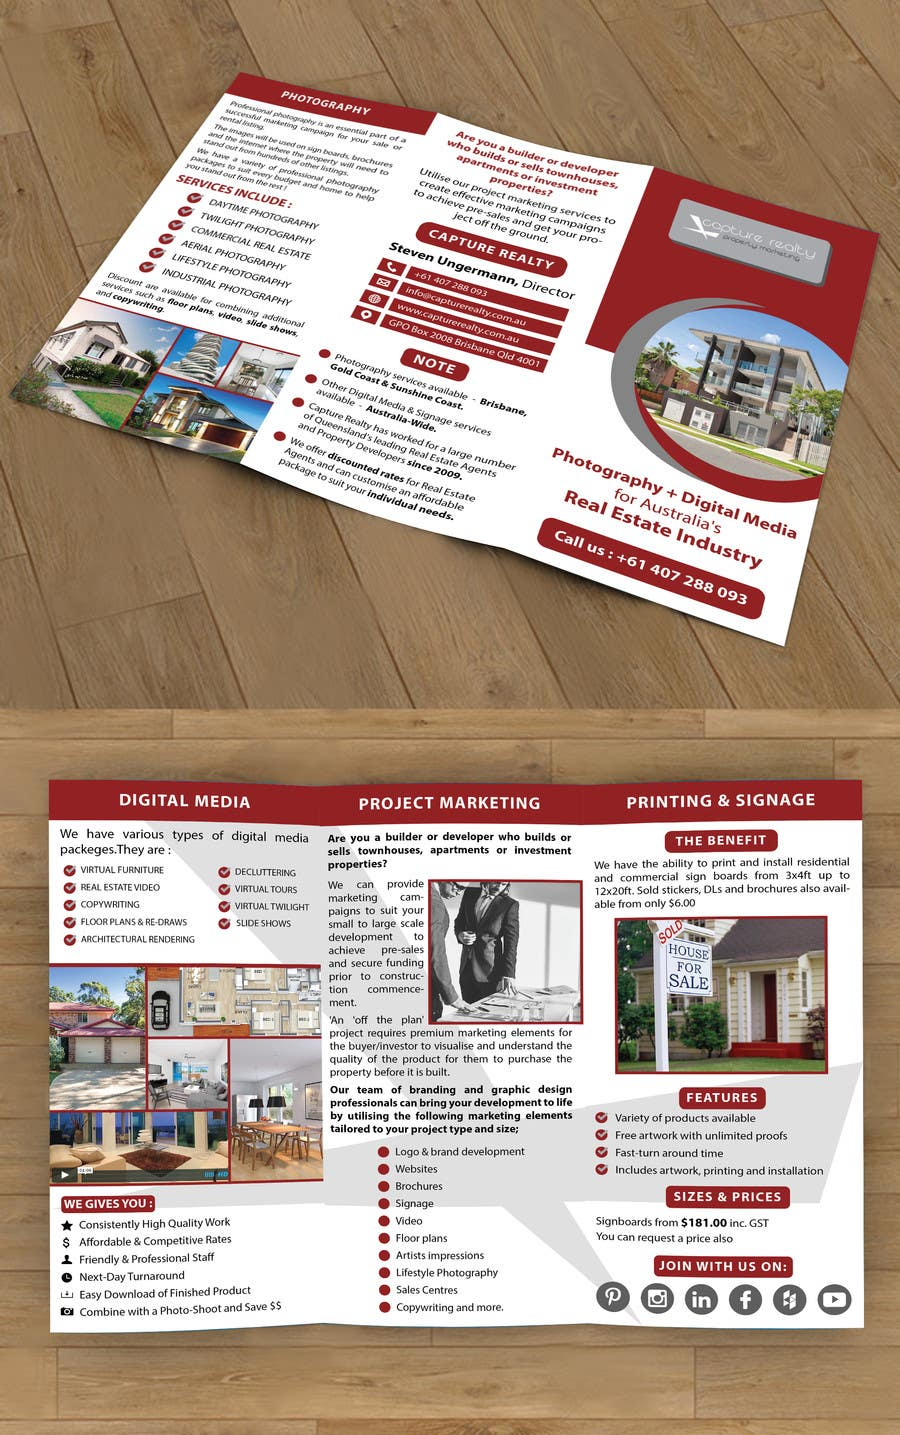 Konkurrenceindlæg #4 for Design a Brochure for a Property Marketing Business using the photos and text from my website.